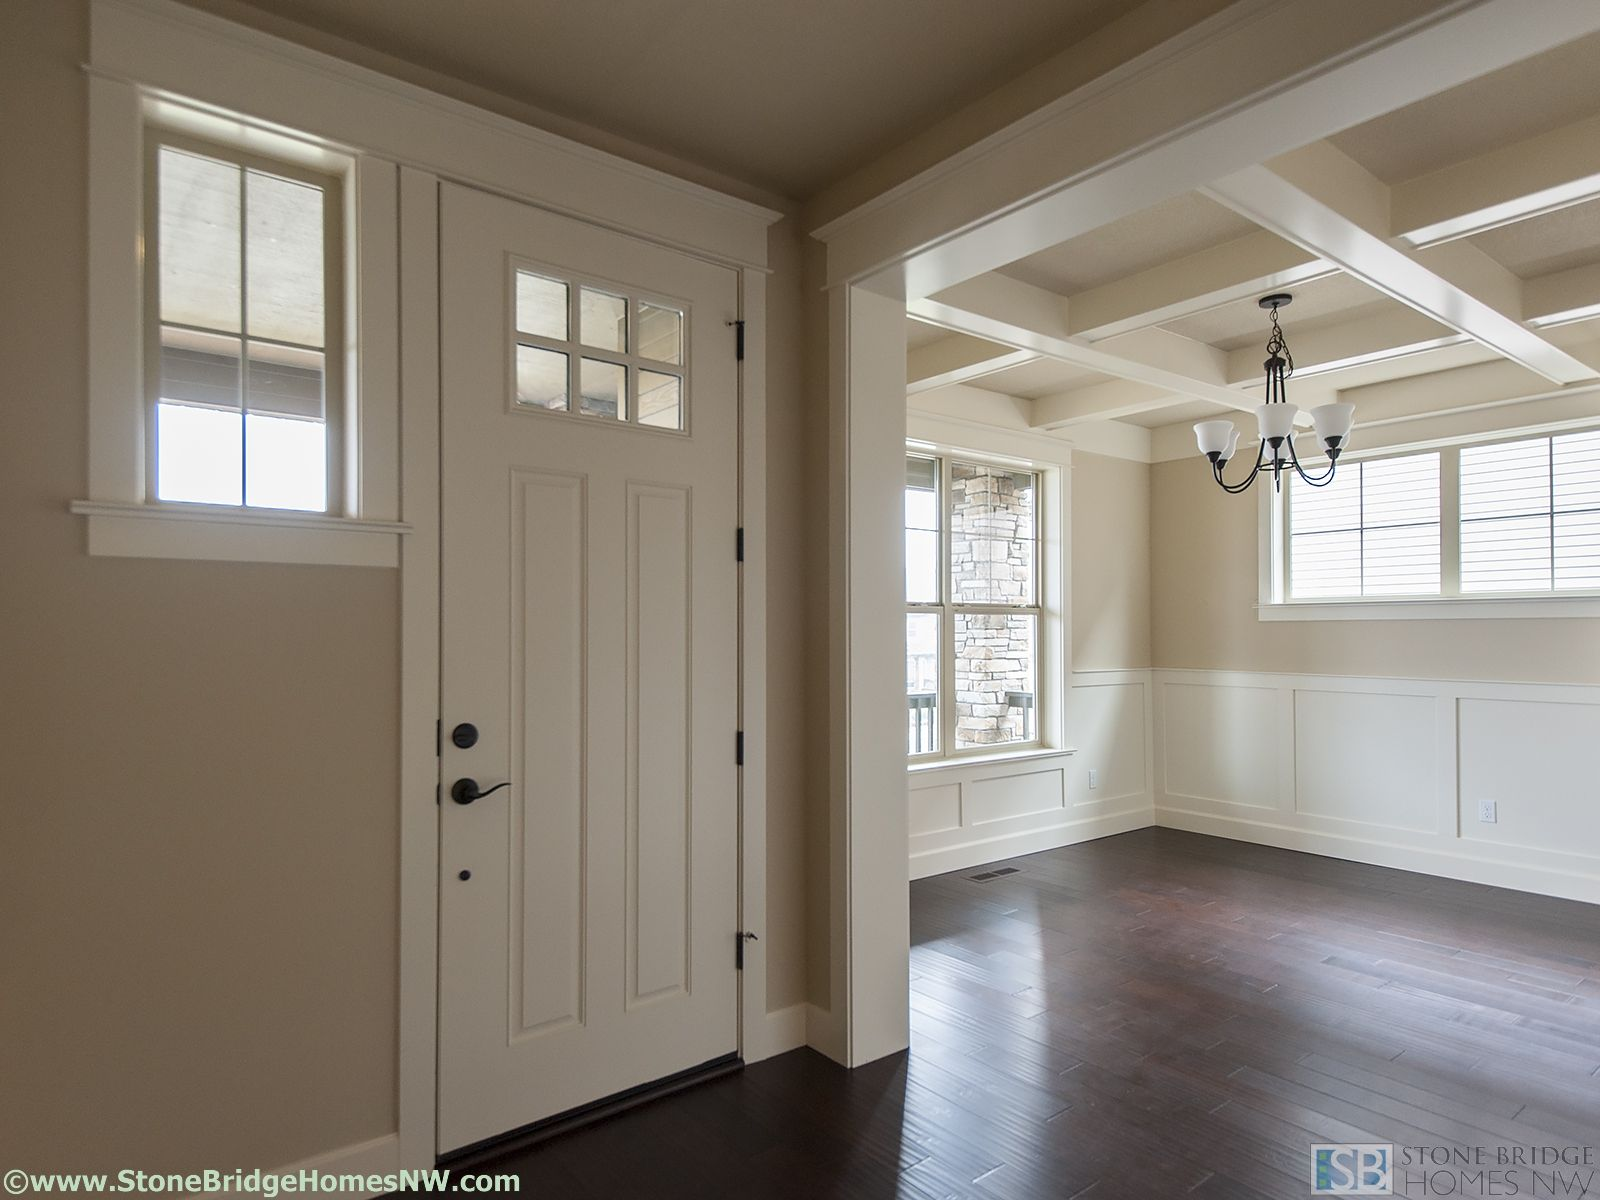 Entry into the dining room with wainscoting and coffered ceilings.